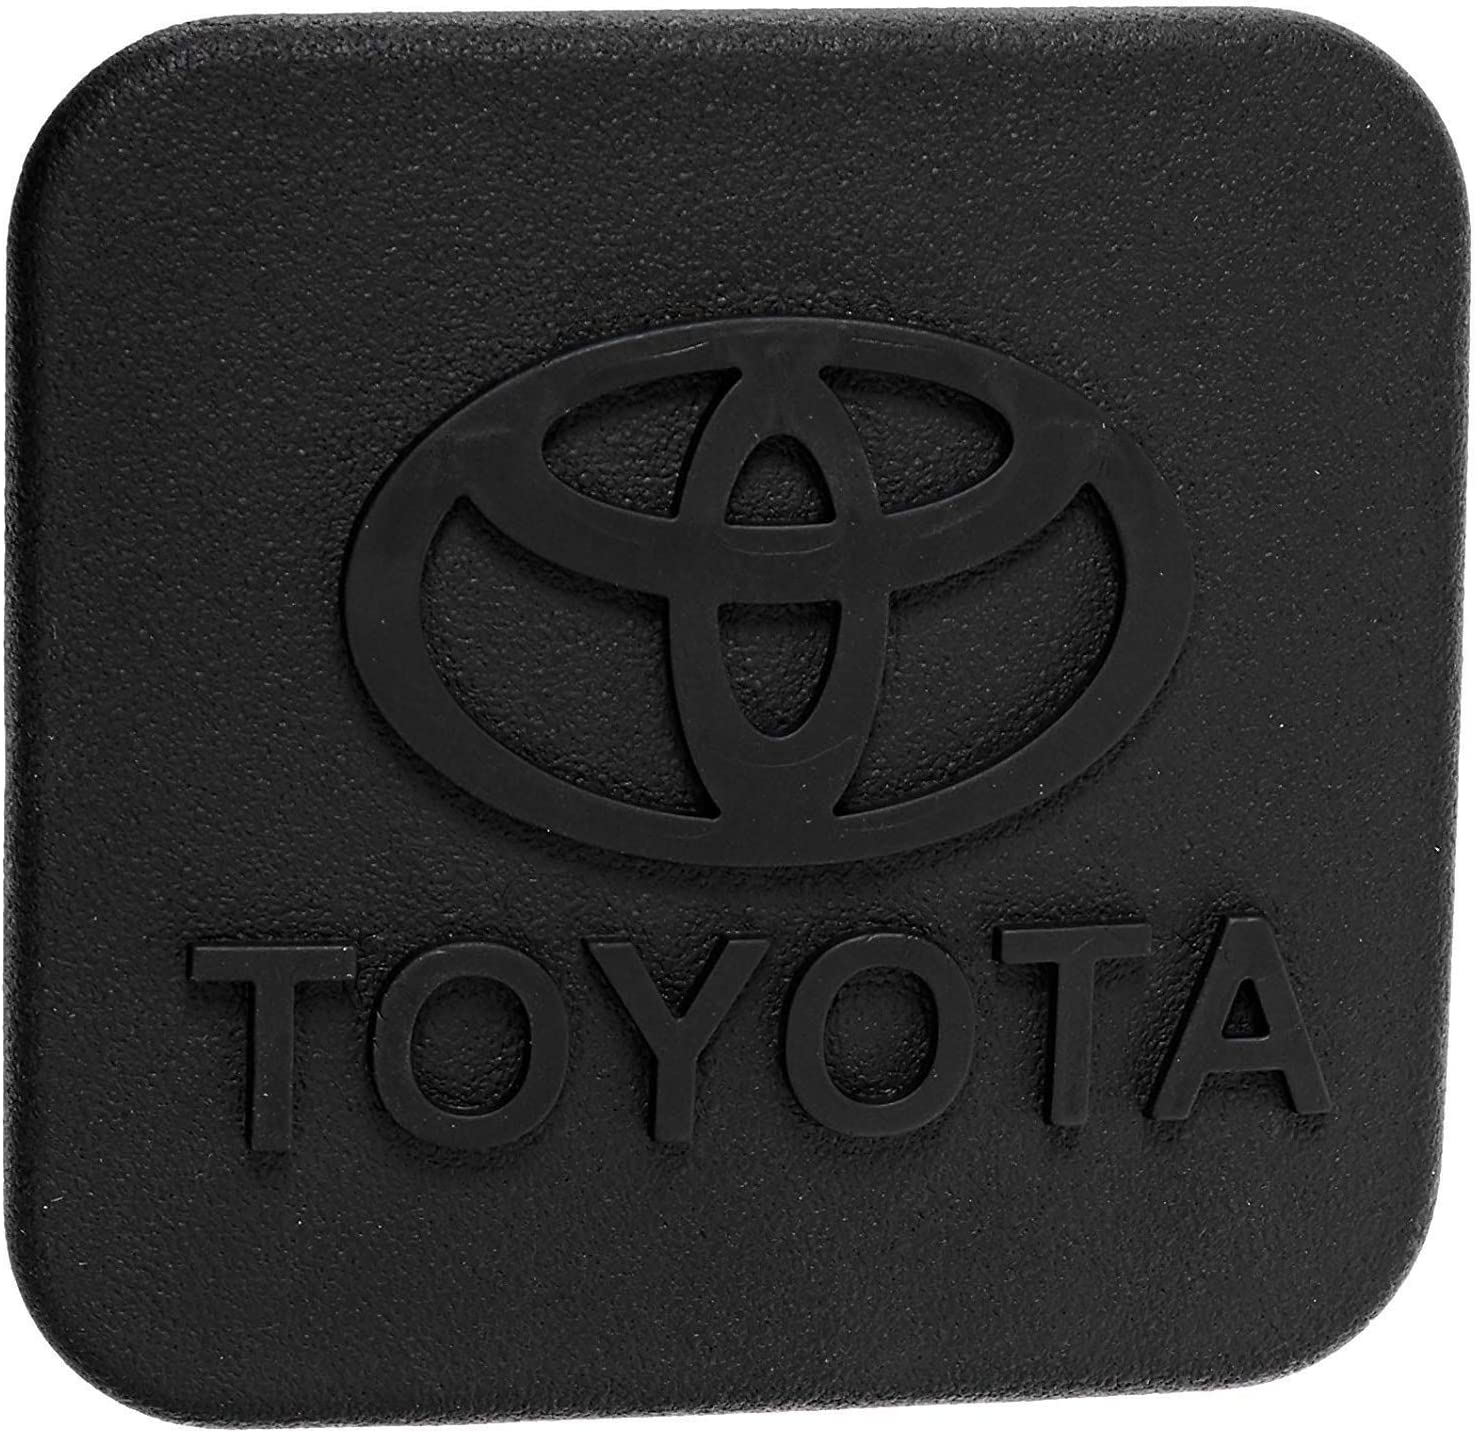 Fits for 2 inches Chevrolet Chevy Trailer Hitch Cover Sturdy Rubber Receiver Tube Hitch Plug Tow Receiver Tube Plug Cap Fits to Chevy 2 Tow Hitch Receiver